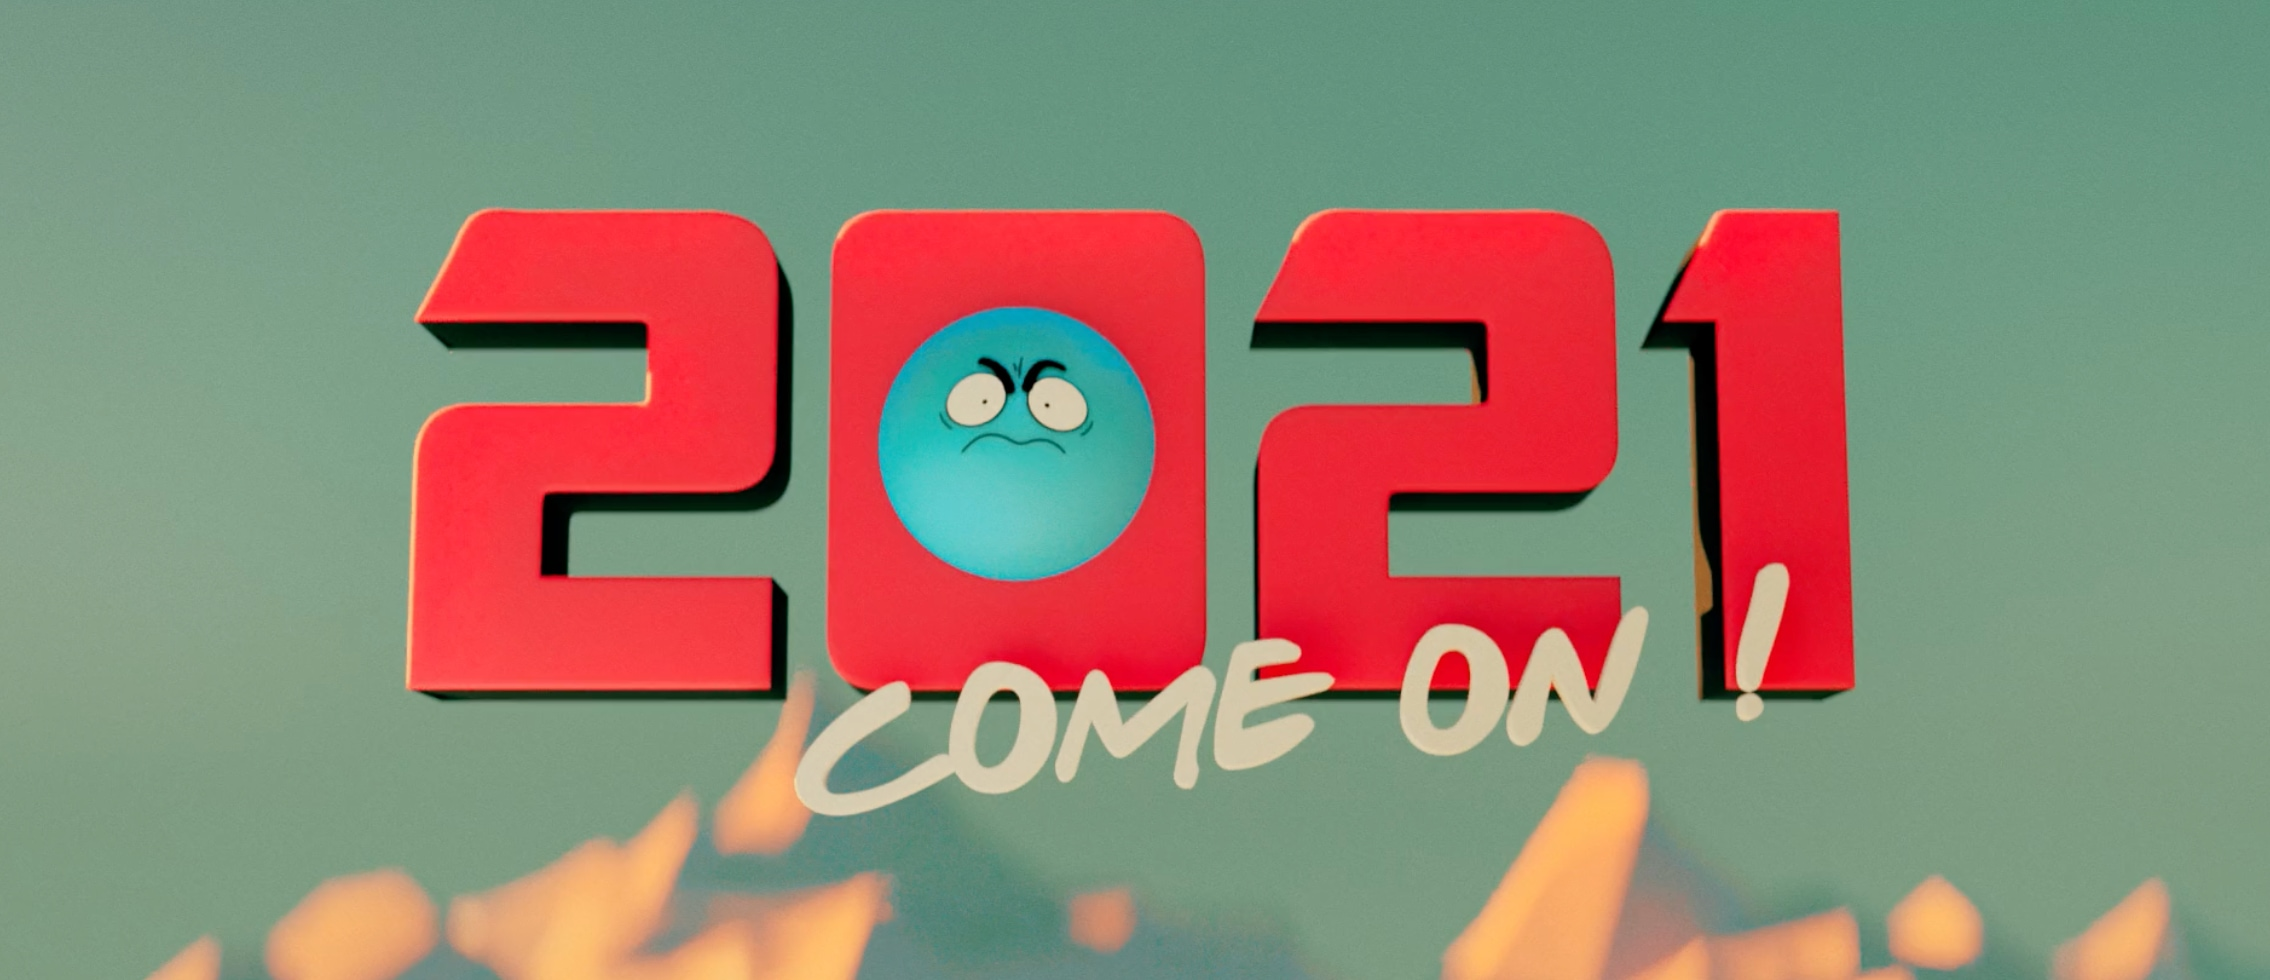 2021, Come On ! Motion Design Monday